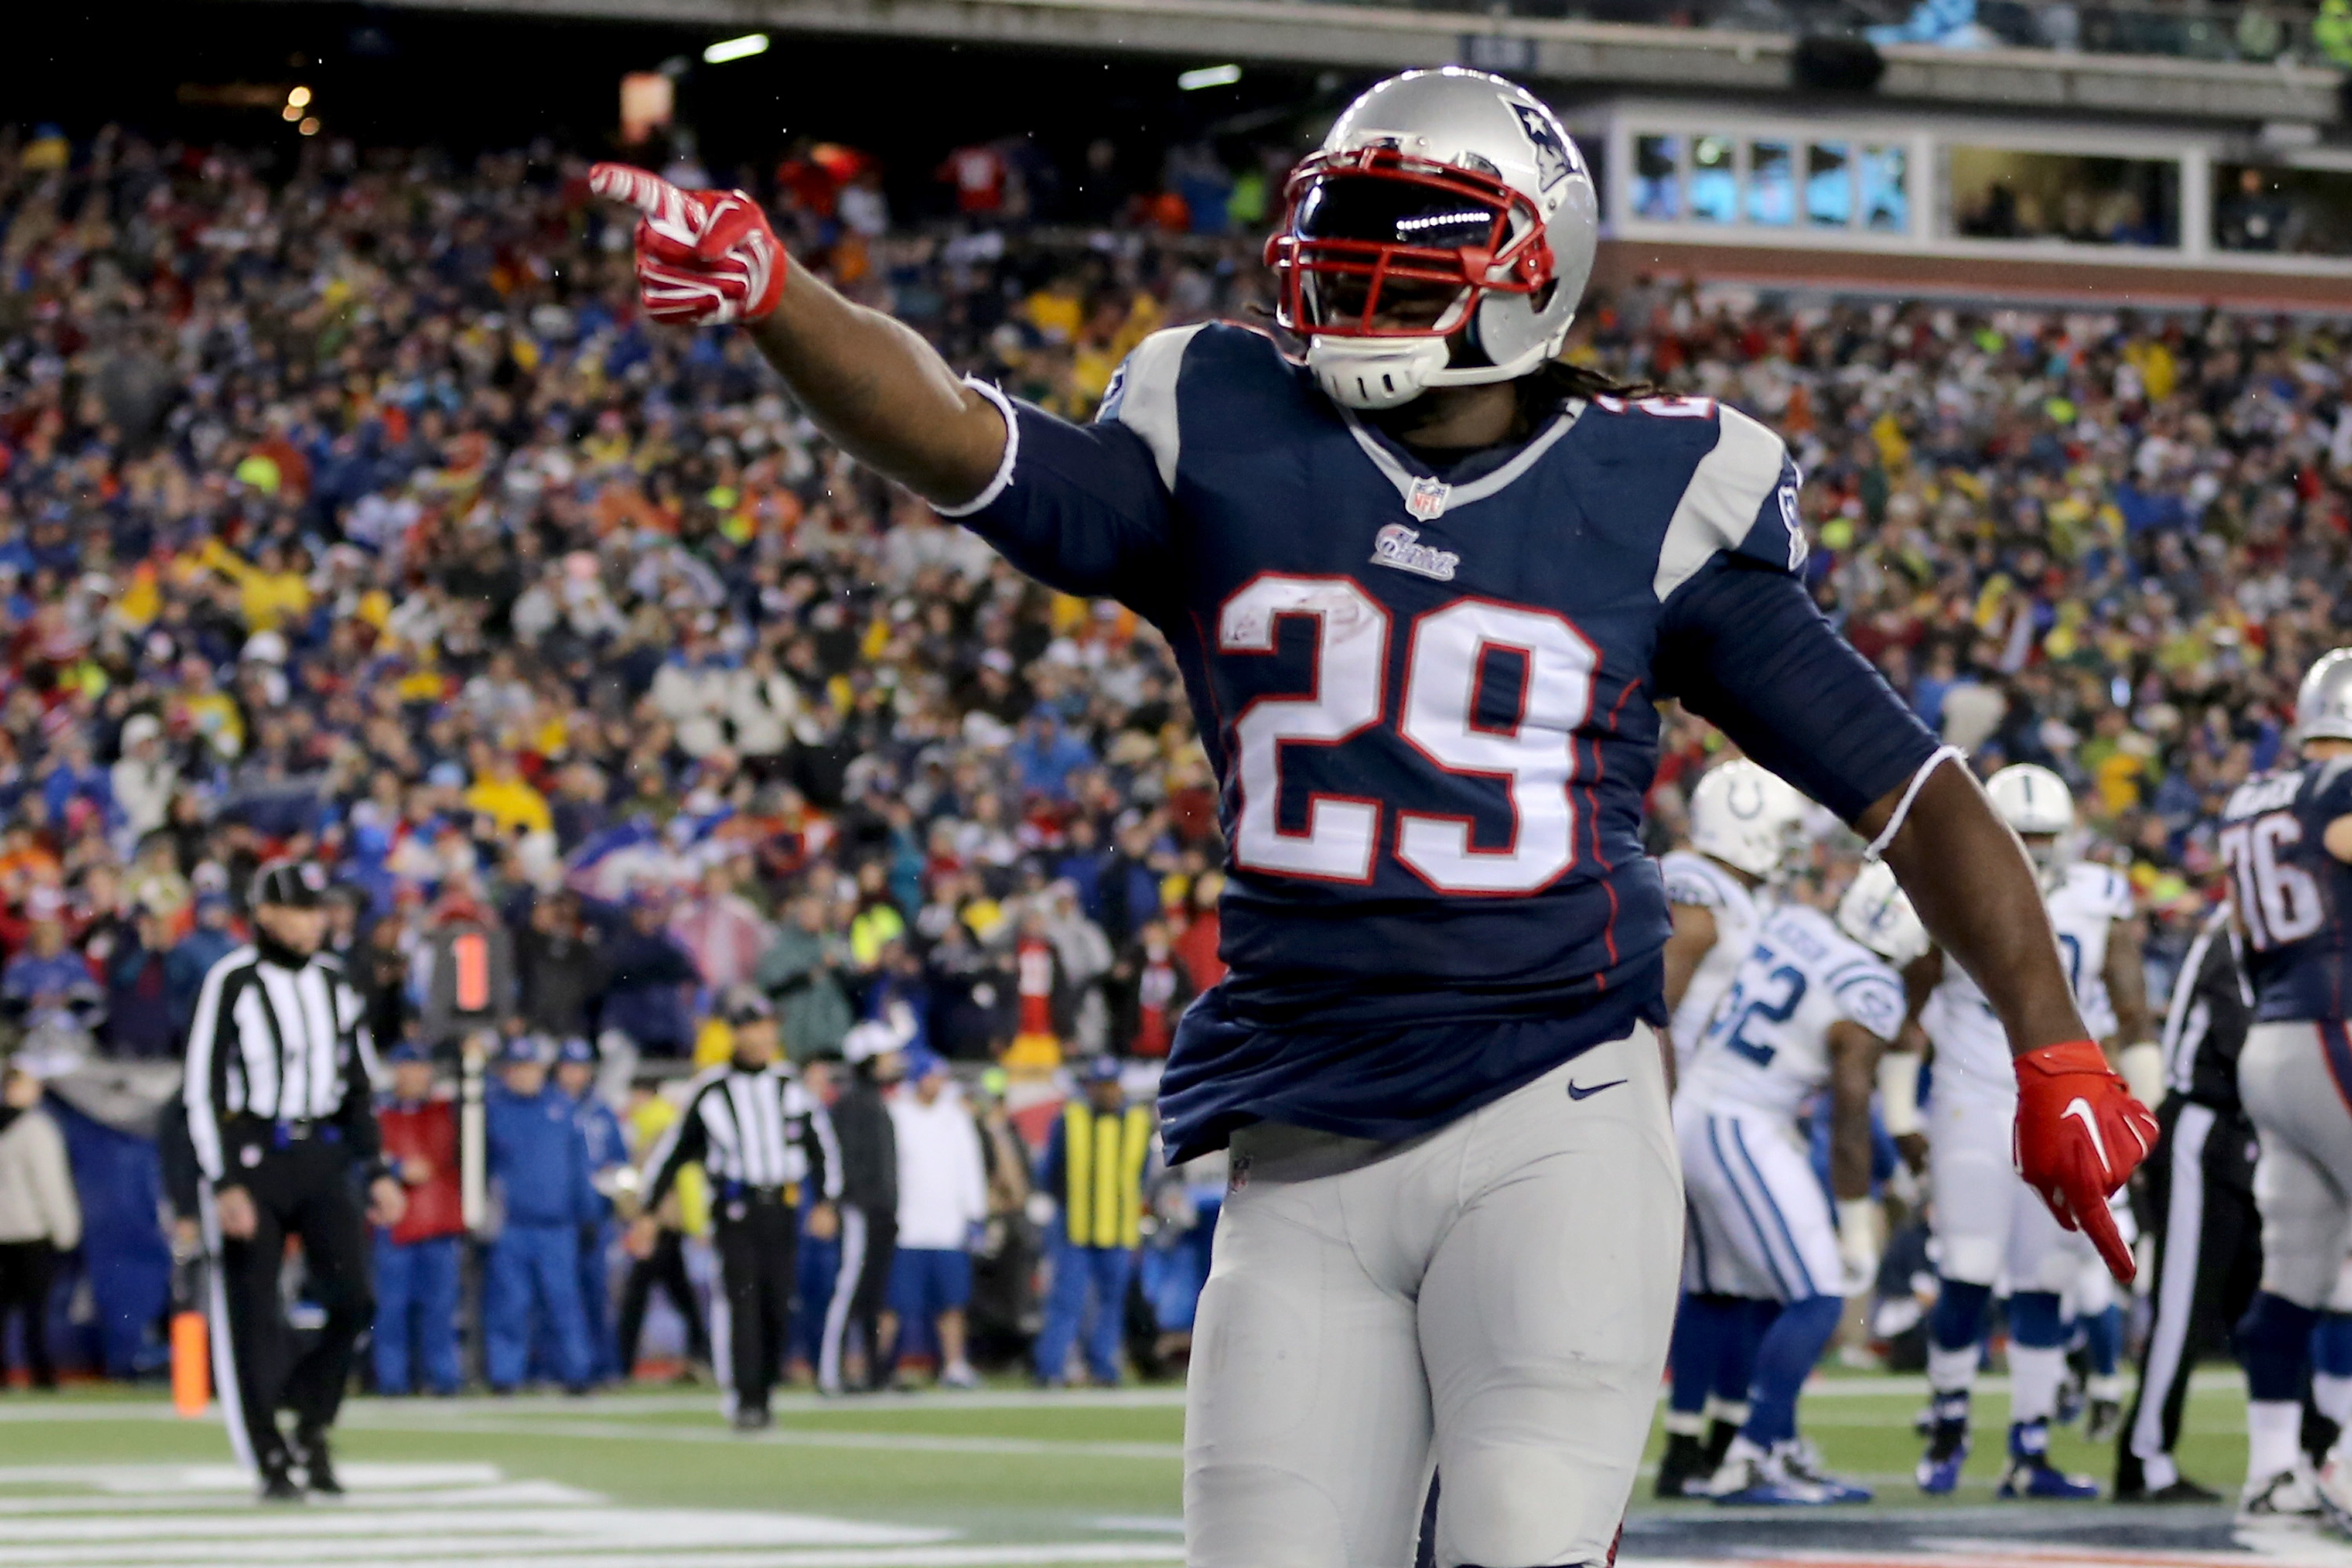 LeGarrette Blount has been an impact player since re-signing with the Patriots in November.  (Photo by Jim Rogash/Getty Images)